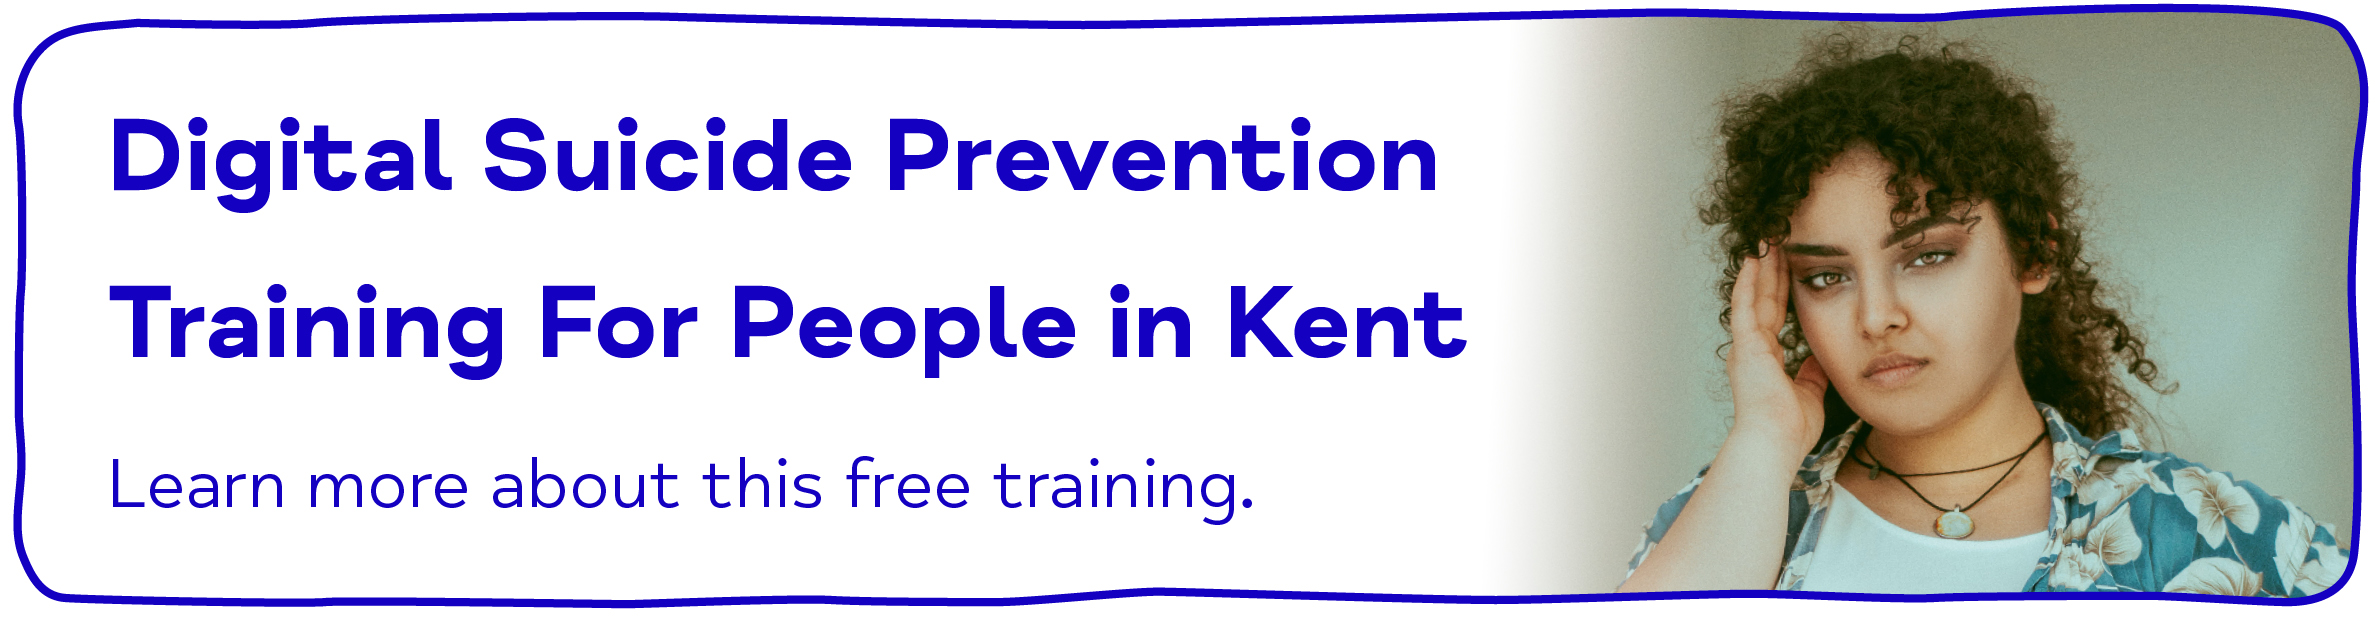 Digital Suicide Prevention Training For People in Kent. Learn more about this free training.